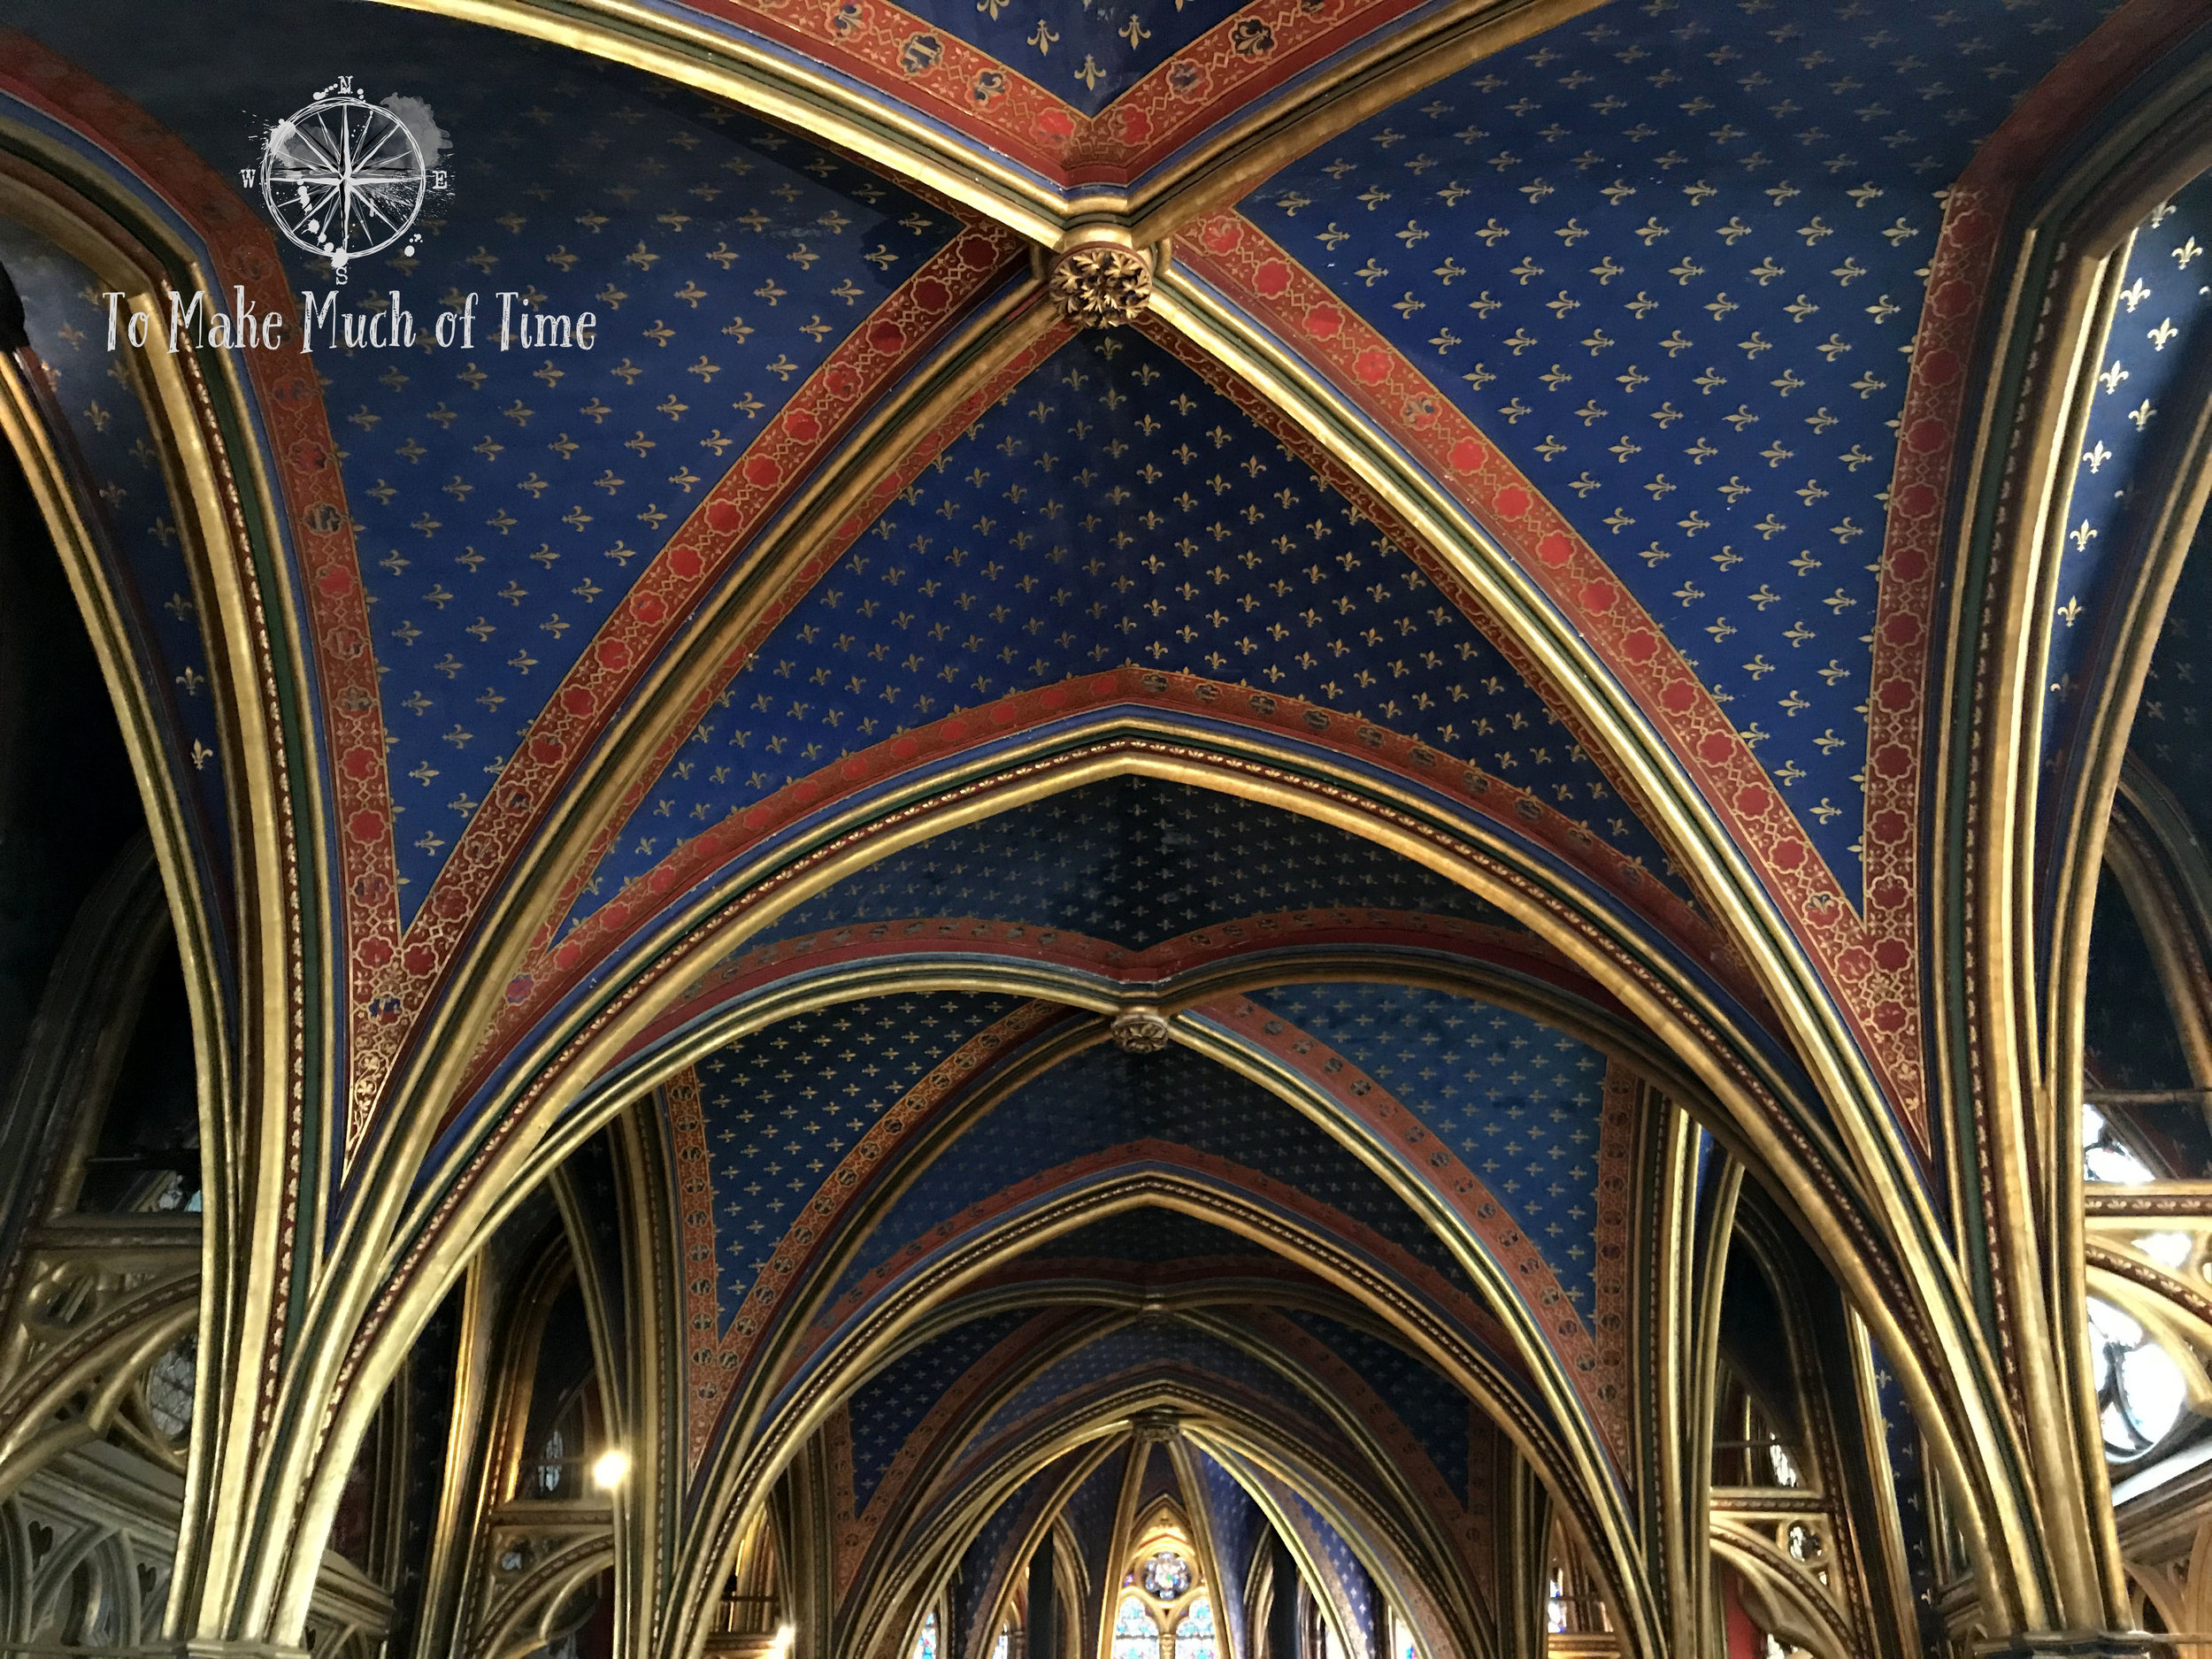 Sainte-Chapelle has details that will take your breath away.